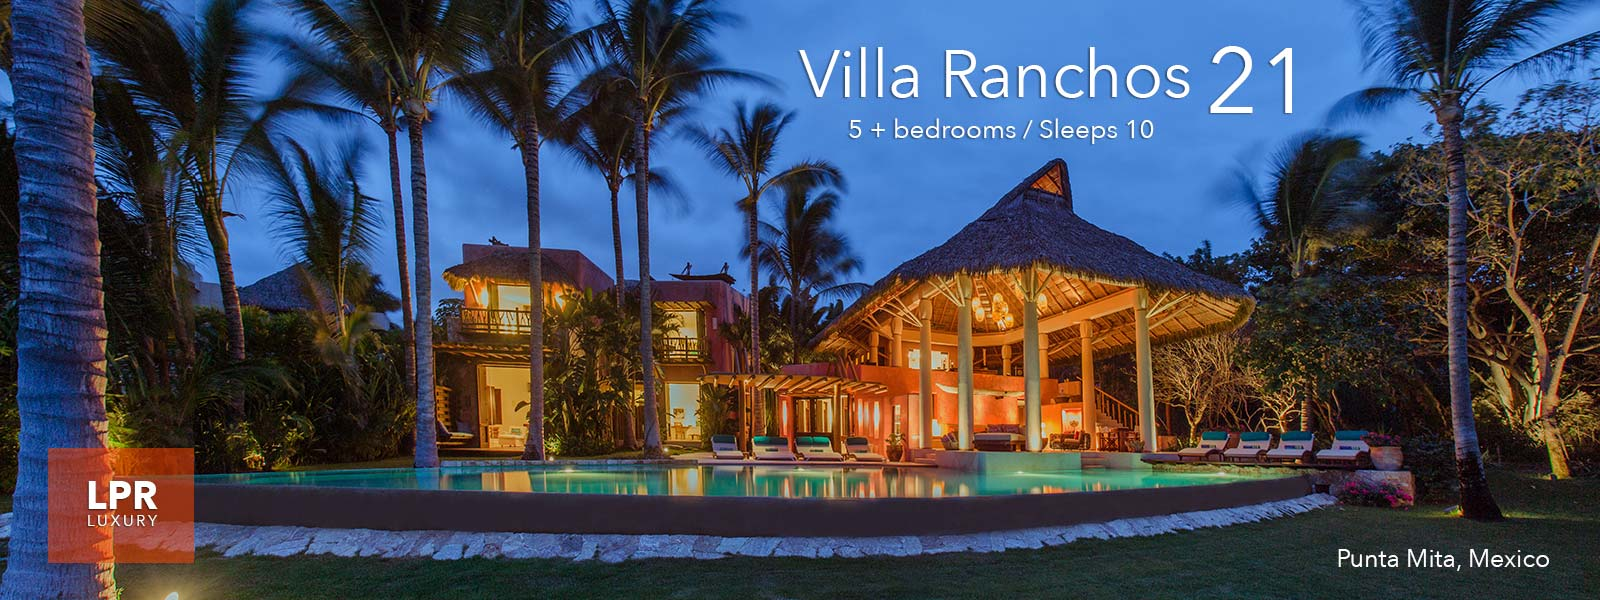 Villa Ranchos 21 - Ranchos Estates - Luxury Villas of the Punta Mita Resort, Mexico